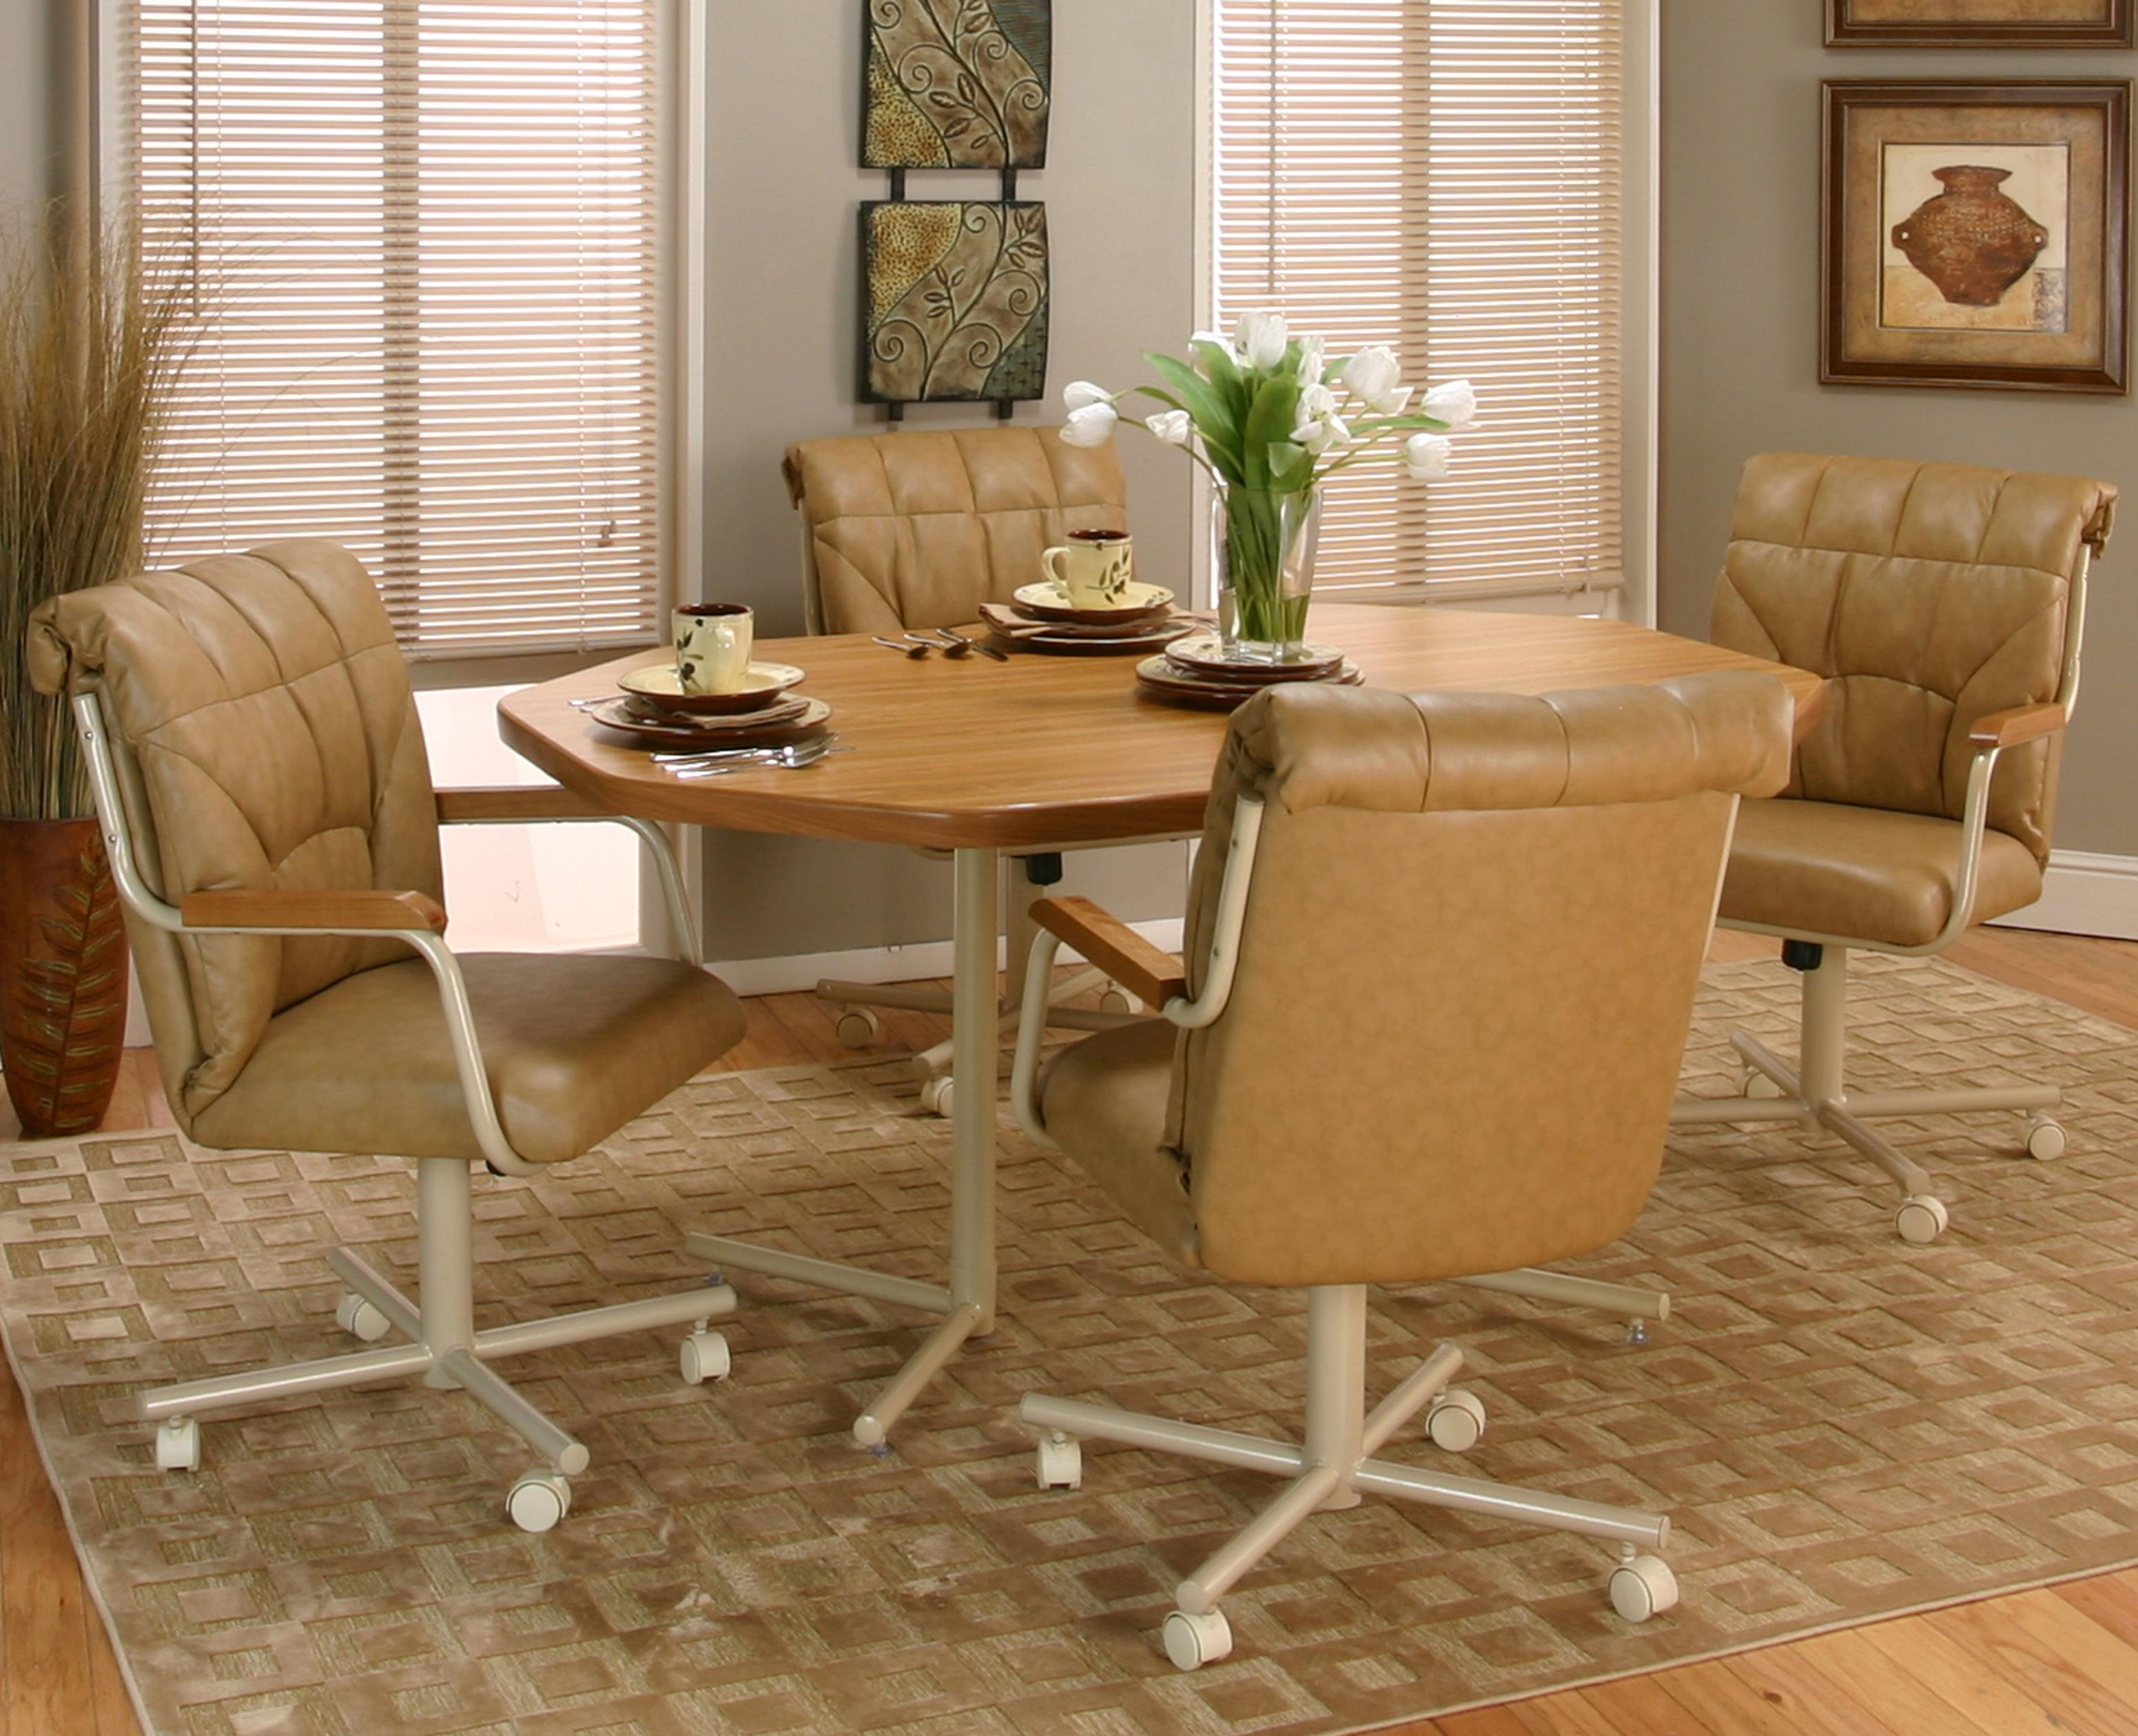 Chair Dinette Chairs With Casters Dining Chairs With Casters Dining